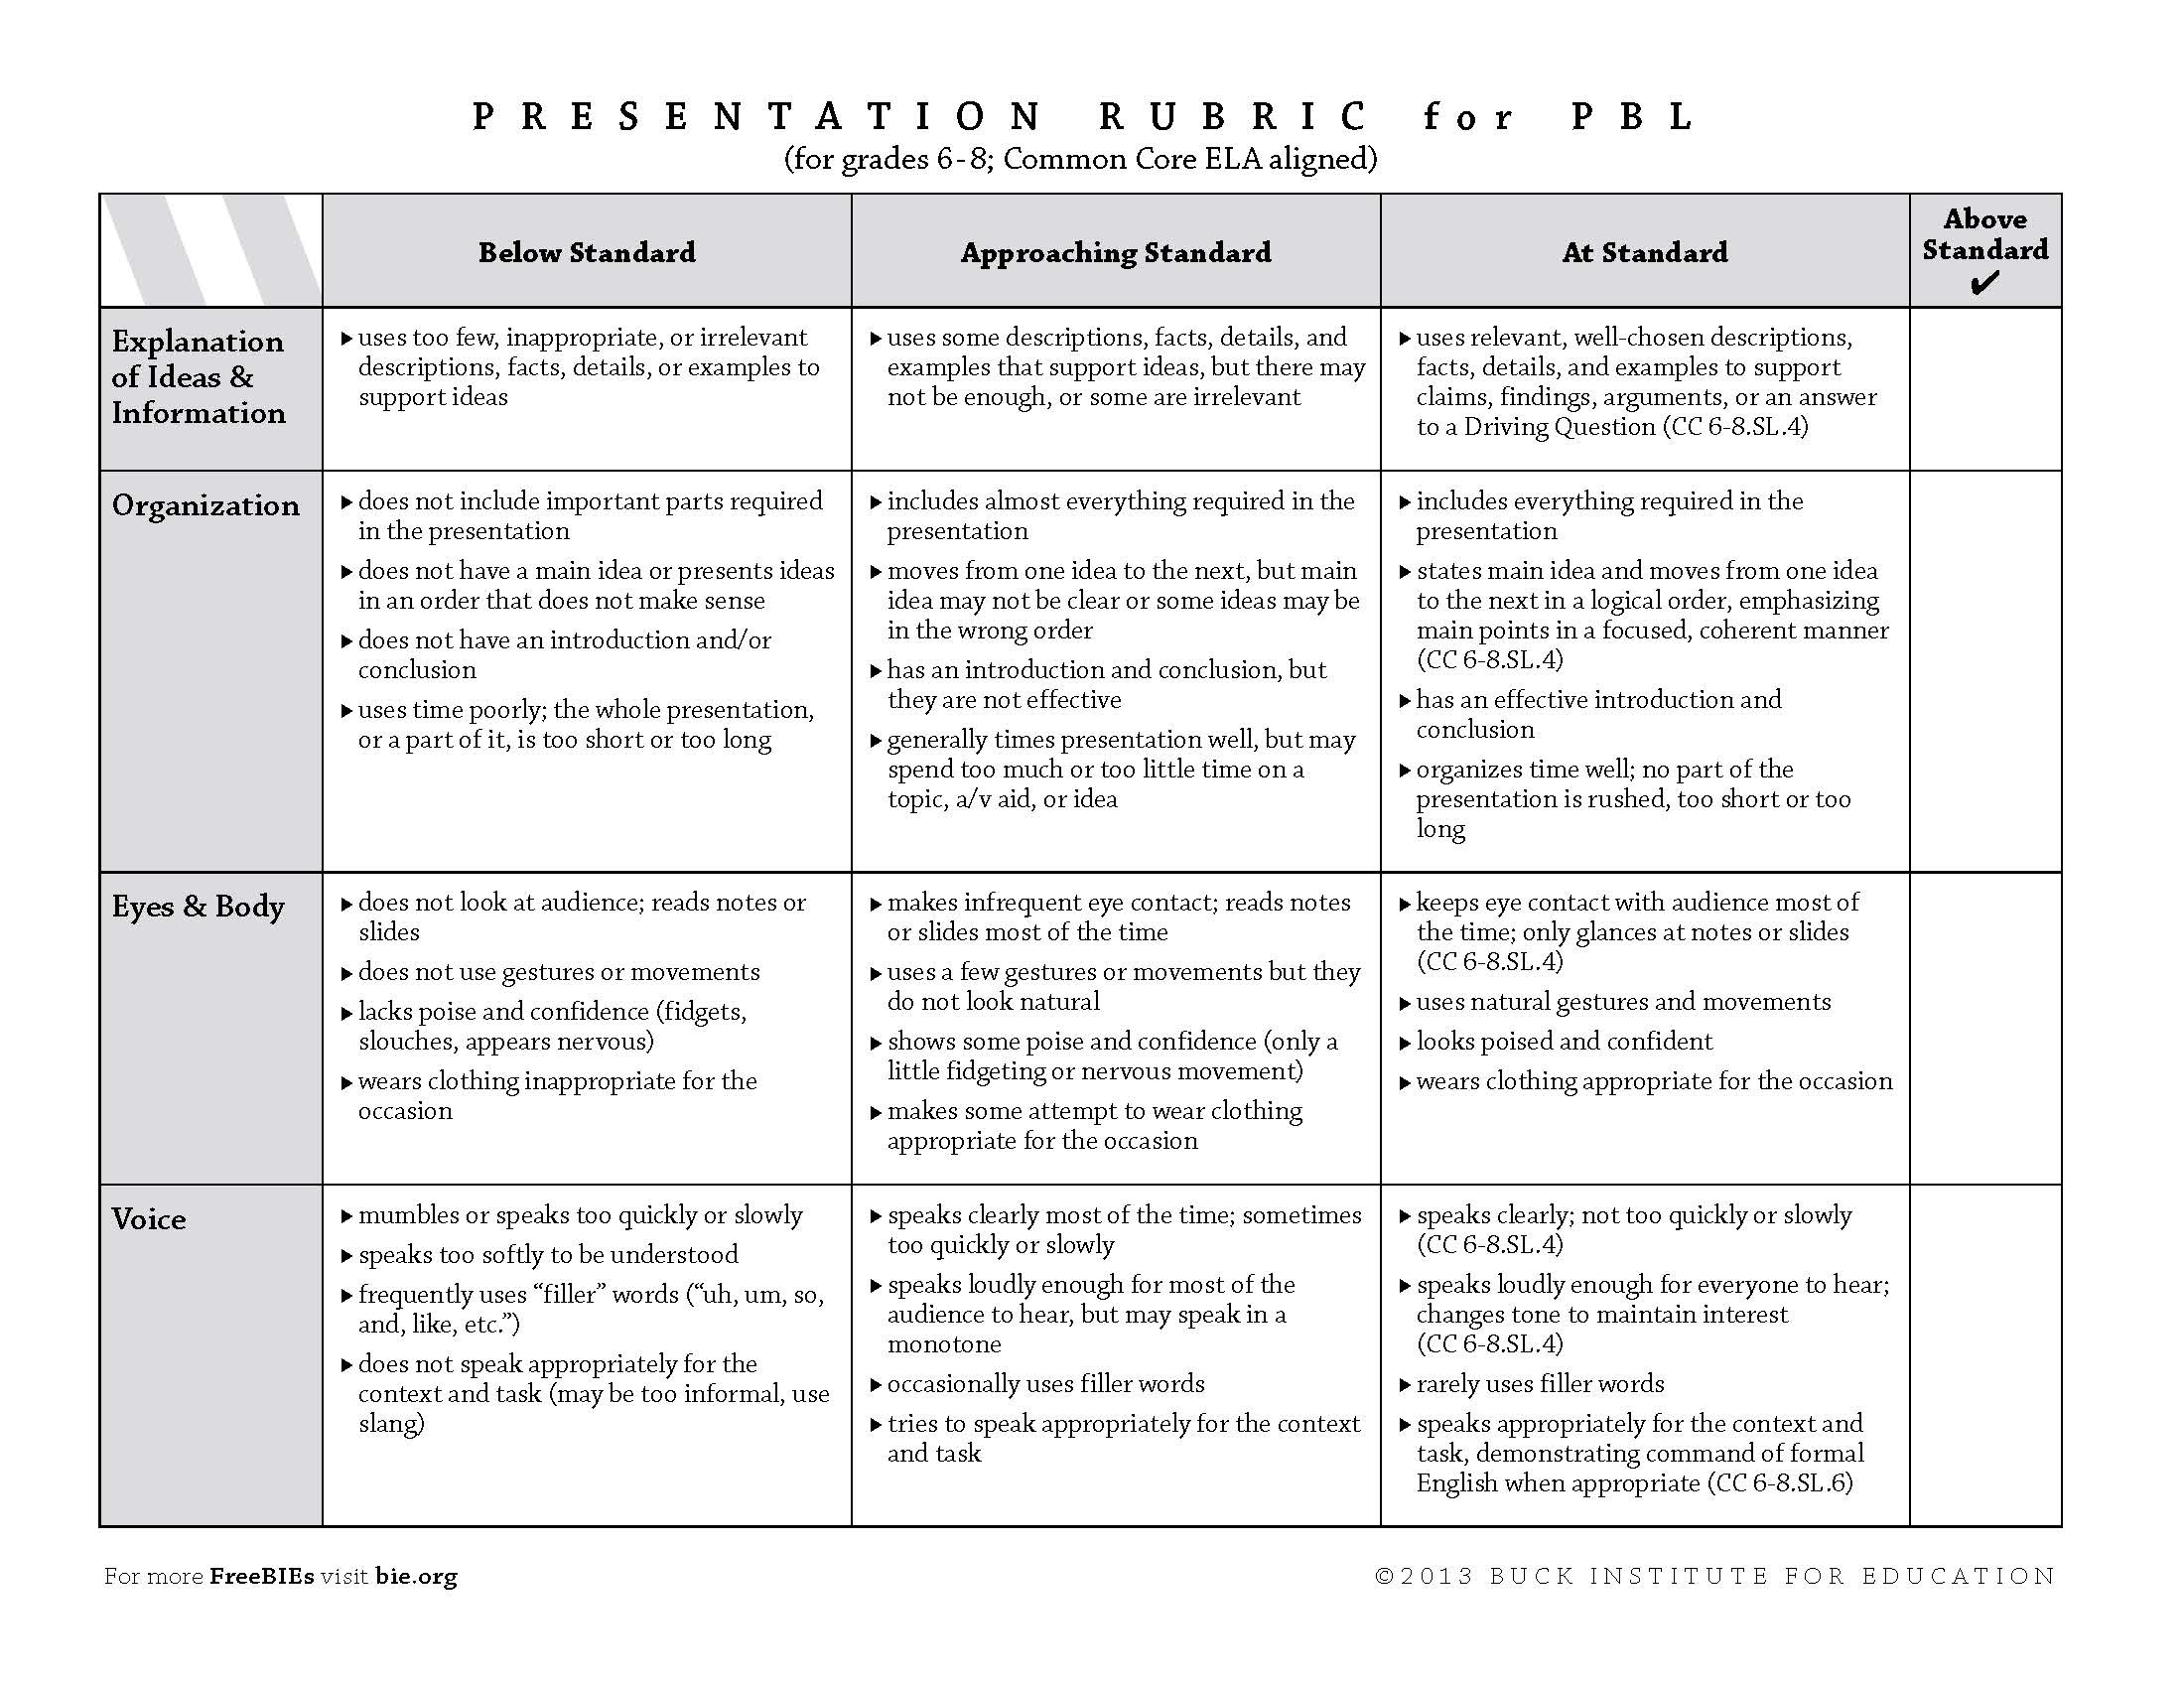 Assessment And Rubrics - Kathy Schrock's Guide To Everything - Free Printable Art Rubrics